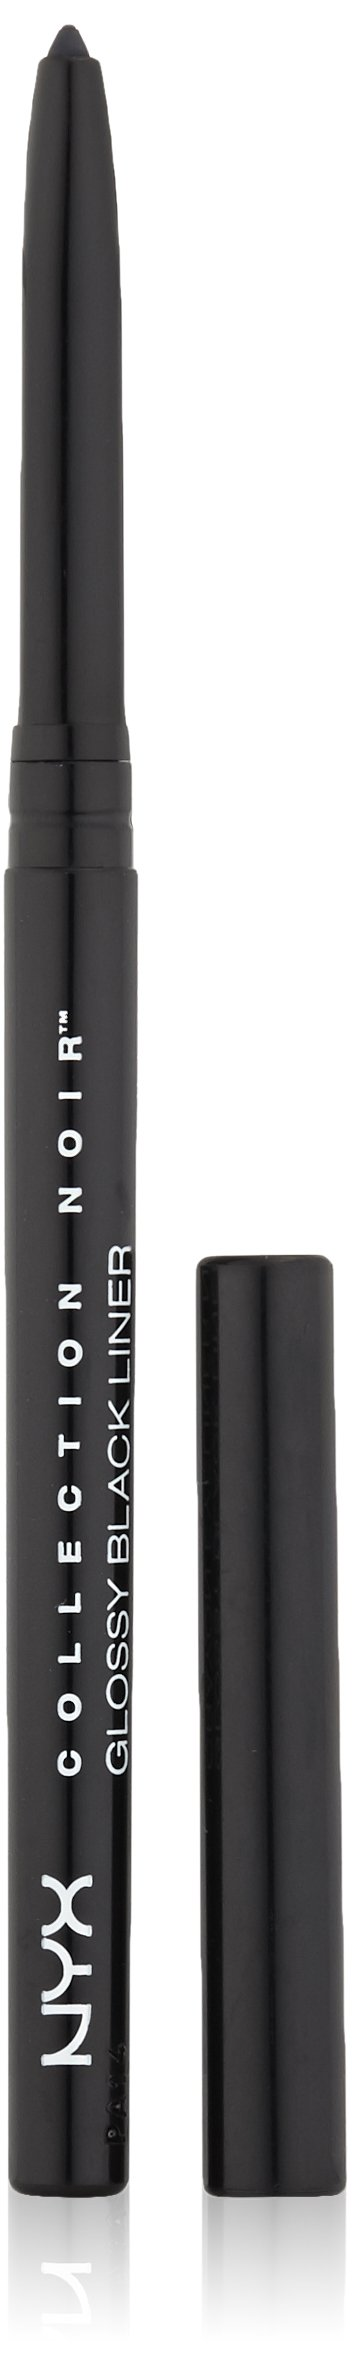 NYX Professional Makeup Collection Noir Glossy Liner, Black, 0.01 Ounce